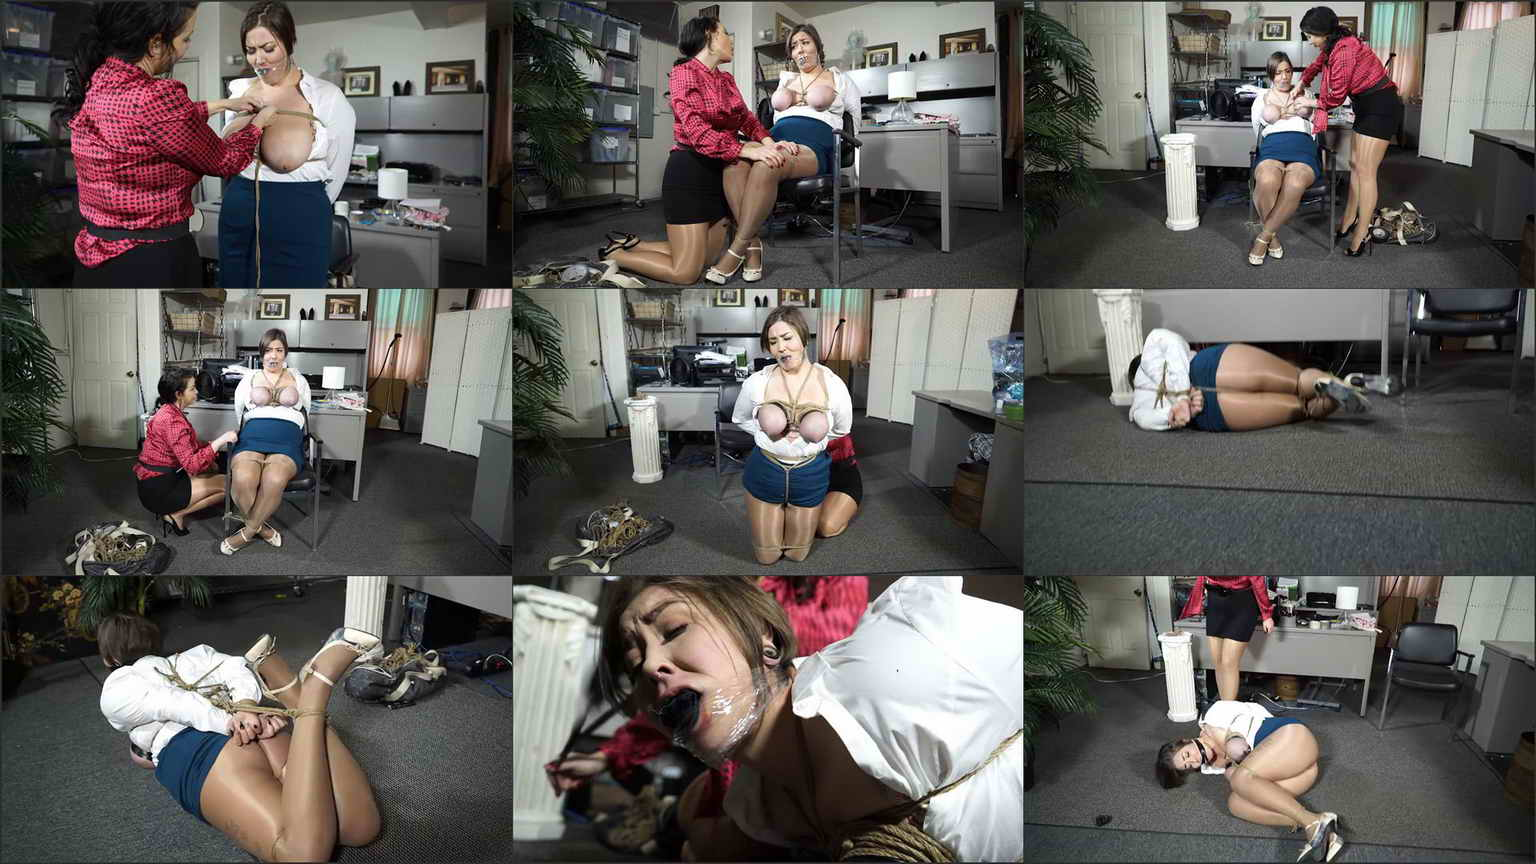 Hairy lesbians free mpeg